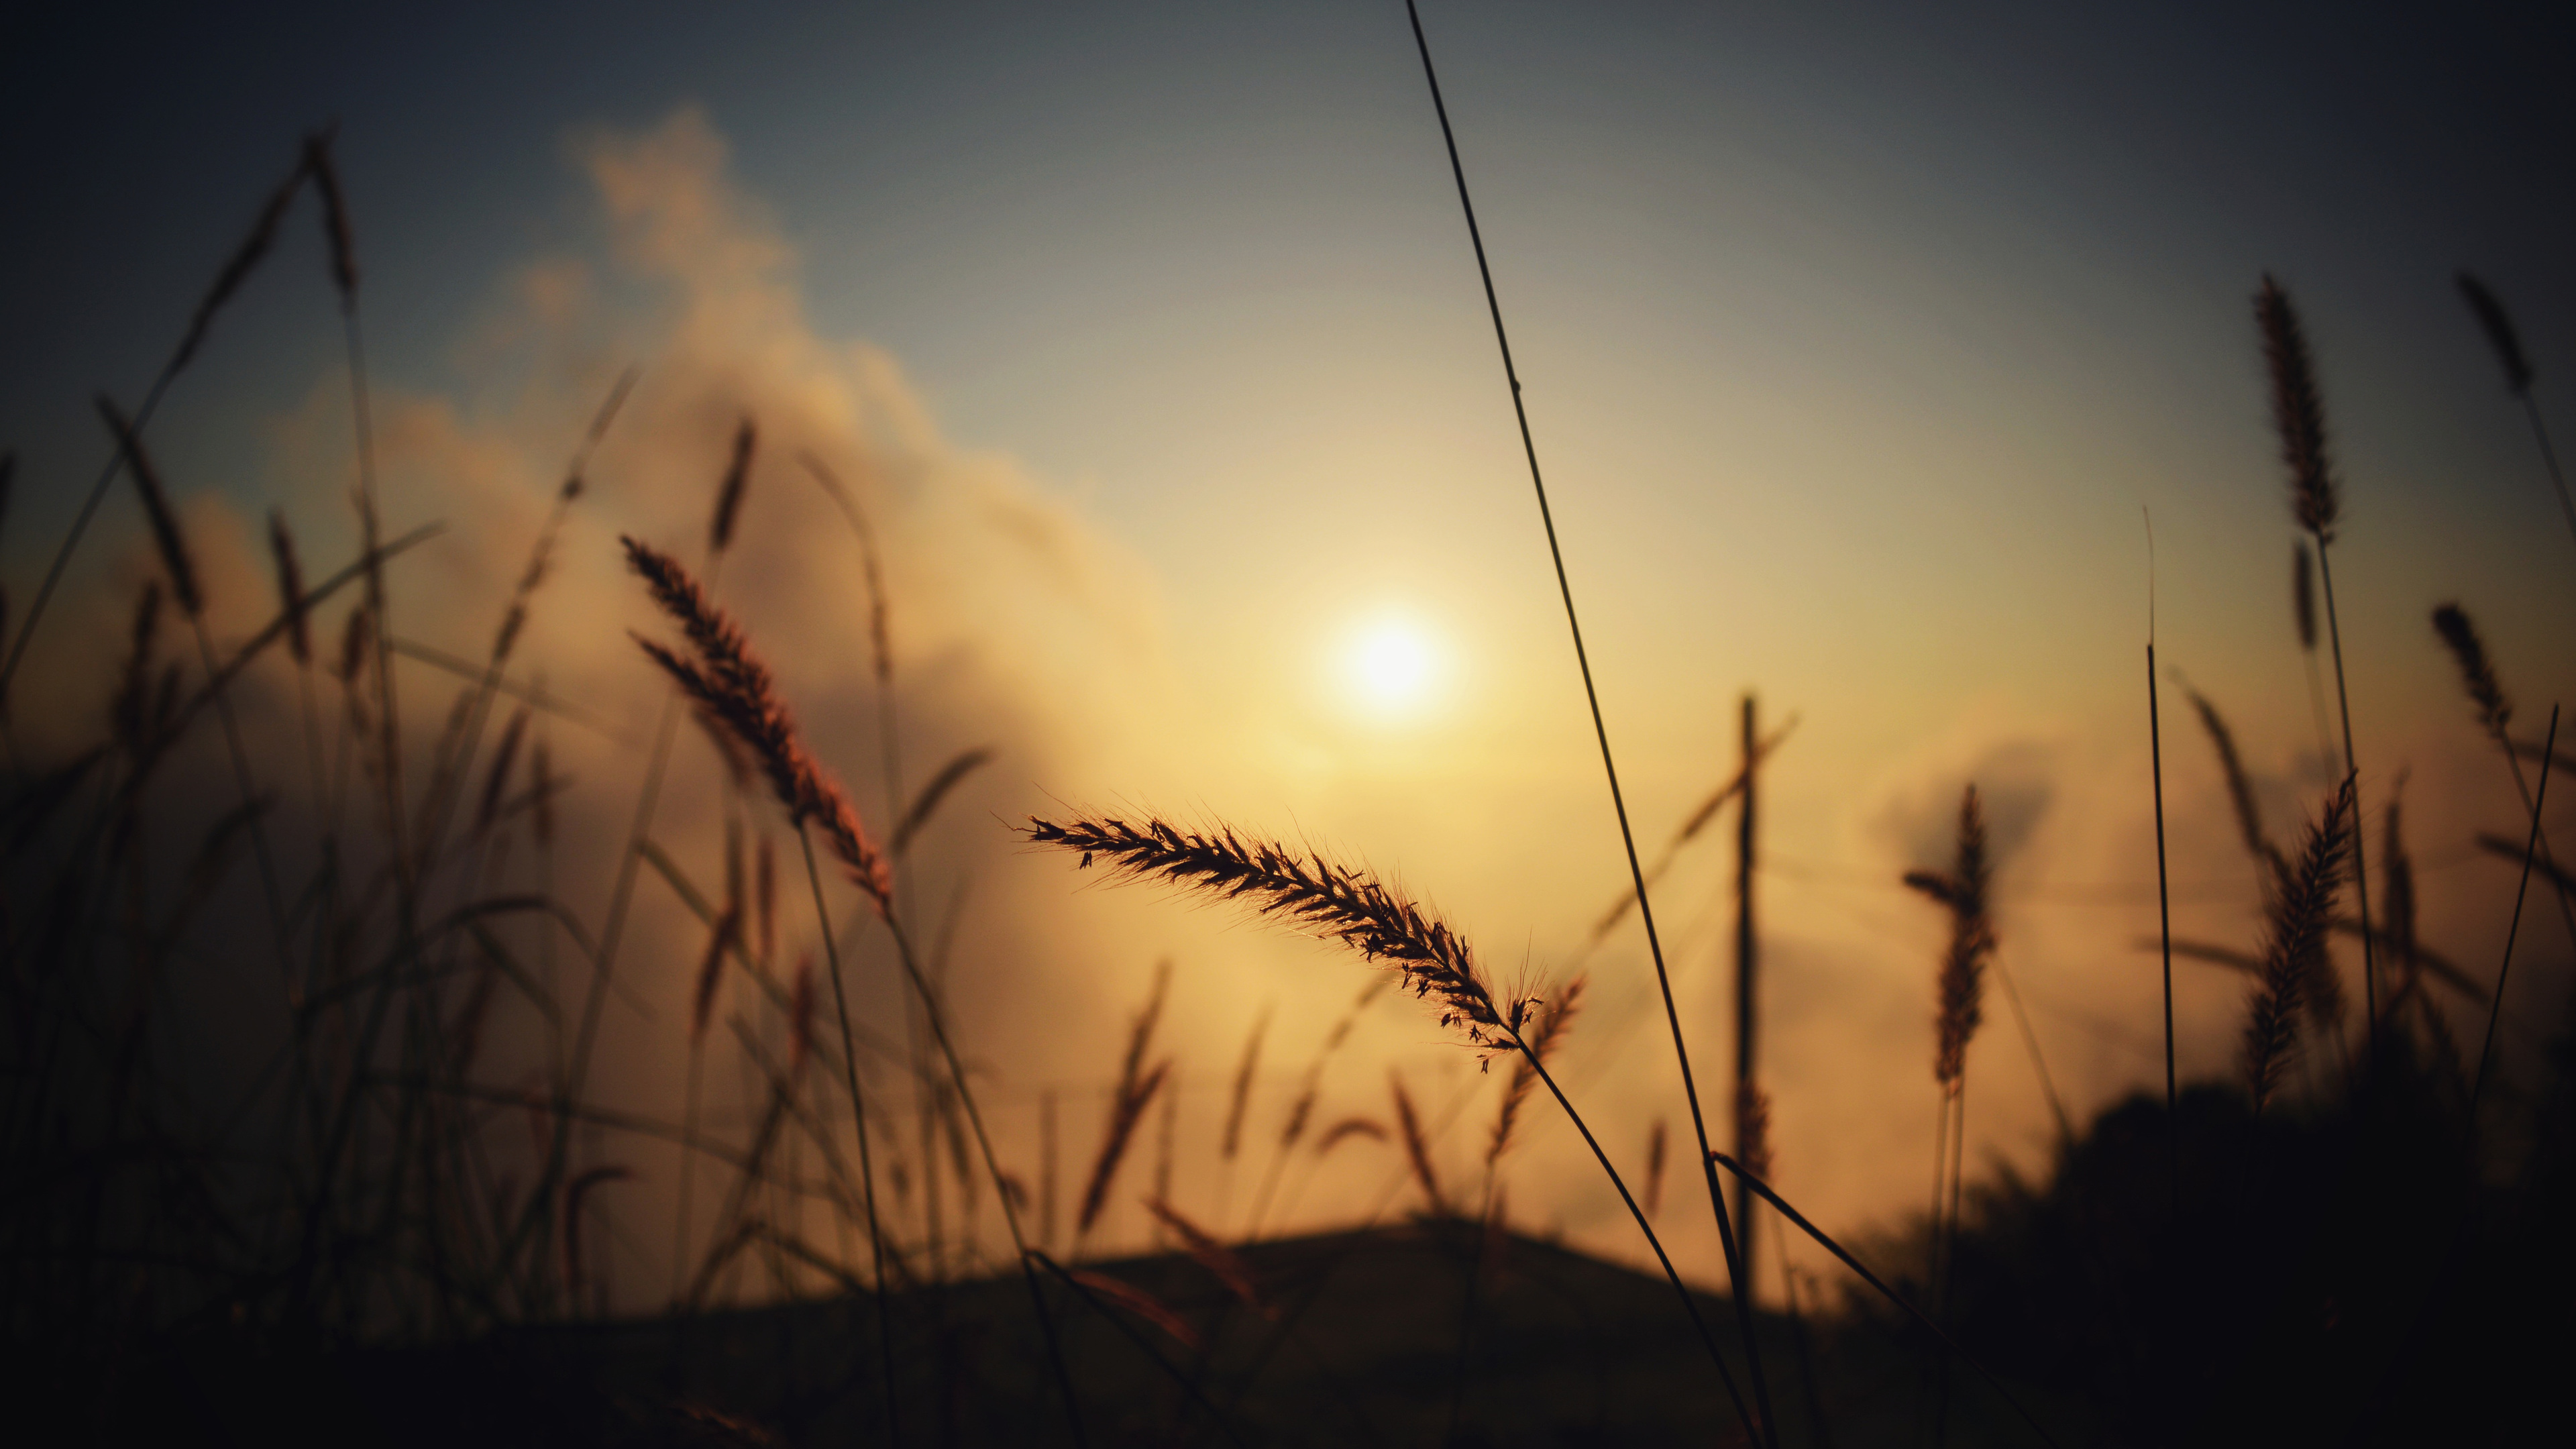 grass silhouette at evening 4k 1540135865 - Grass Silhouette At Evening 4k - silhouette wallpapers, nature wallpapers, hd-wallpapers, grass wallpapers, evening wallpapers, dusk wallpapers, dawn wallpapers, 5k wallpapers, 4k-wallpapers